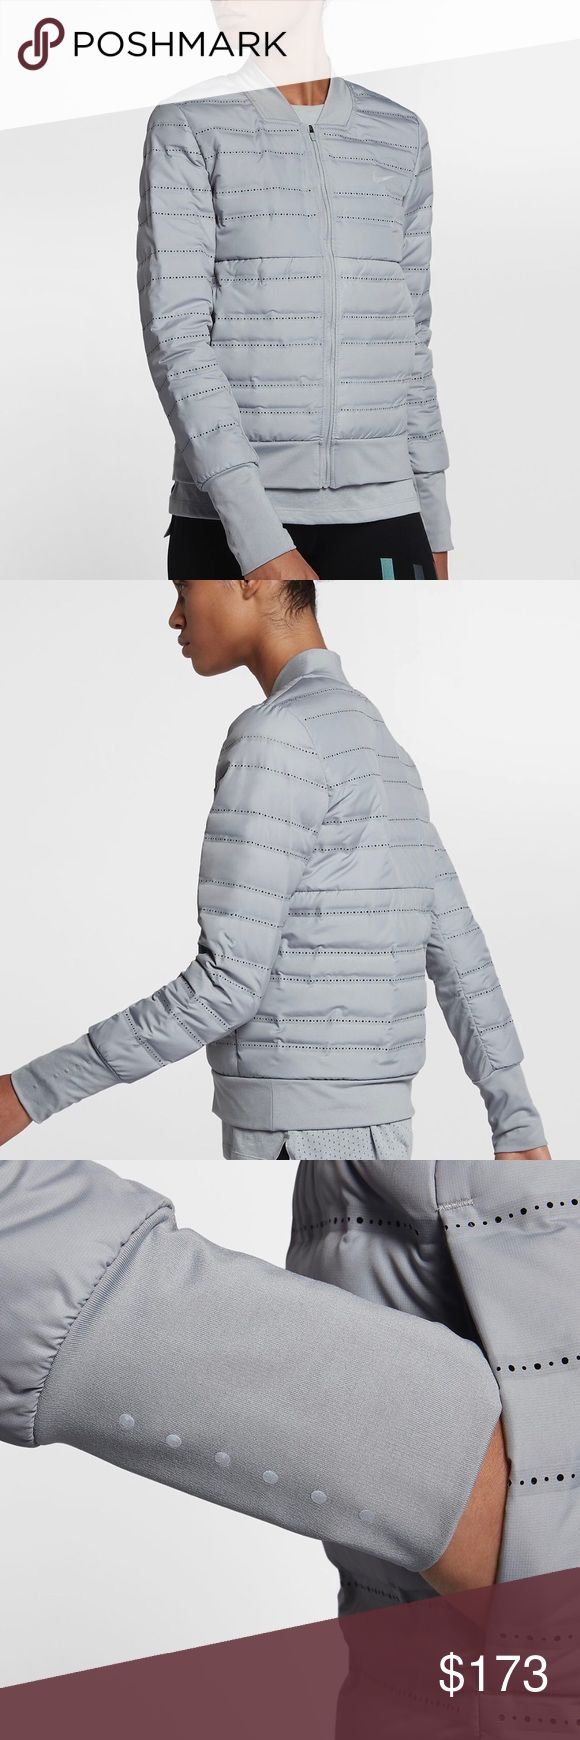 ❤️NWT❤️ NIKE Aeroloft Running Jacket ~ S brand new with tag size S grey comes from smoke free home 100% guaranteed authentic F18000088  Inspired by the classic bomber silhouette, the Nike AeroLoft Women's Running Jacket provides warmth on your run and a modern look all day. Ideal over a light hoodie or your favorite tee, this innovative jacket helps keep you warm without overheating. Nike Jackets & Coats Puffers